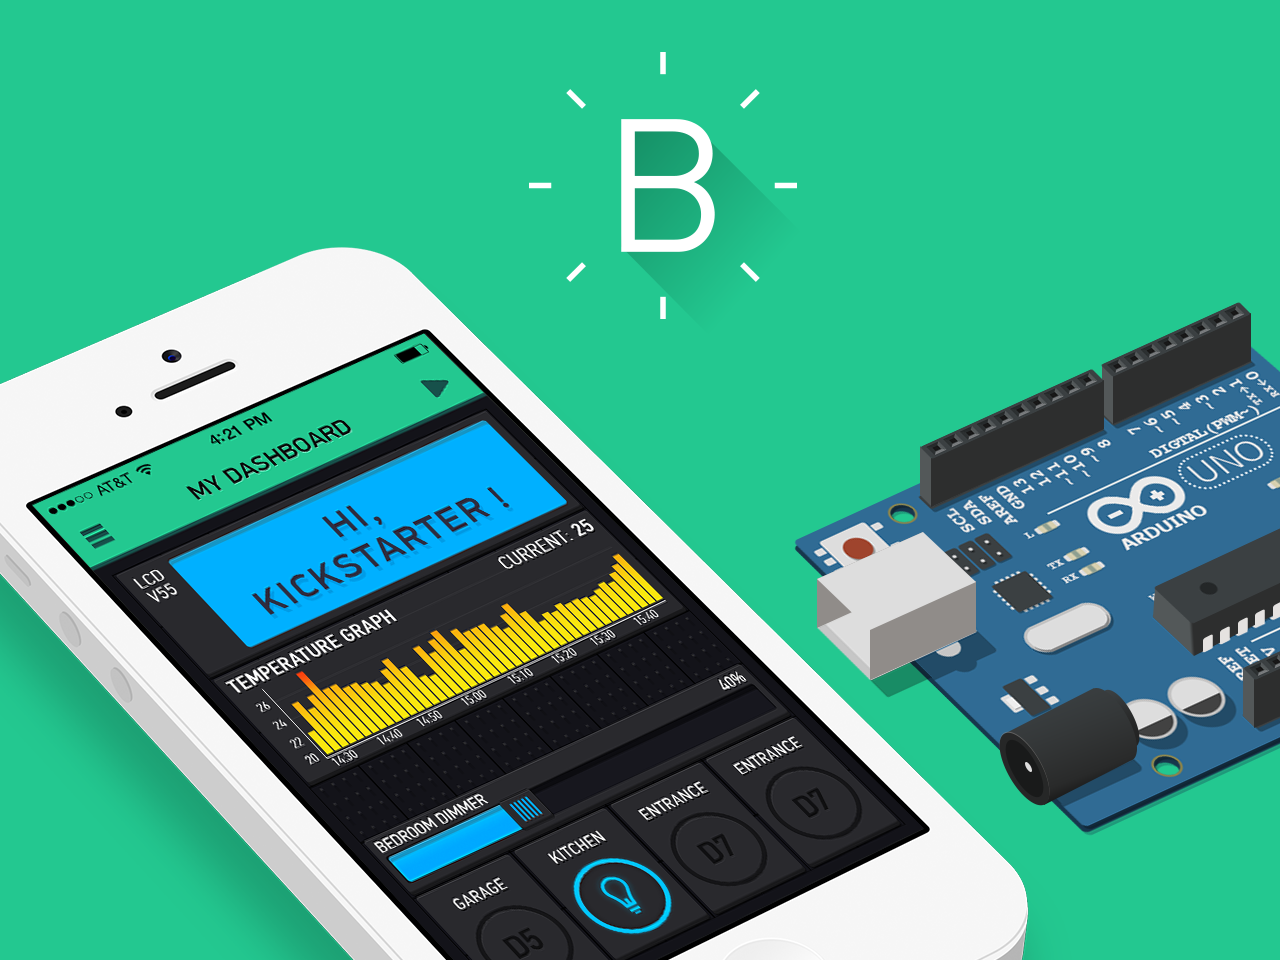 Blynk is a platform with ios and android apps to control